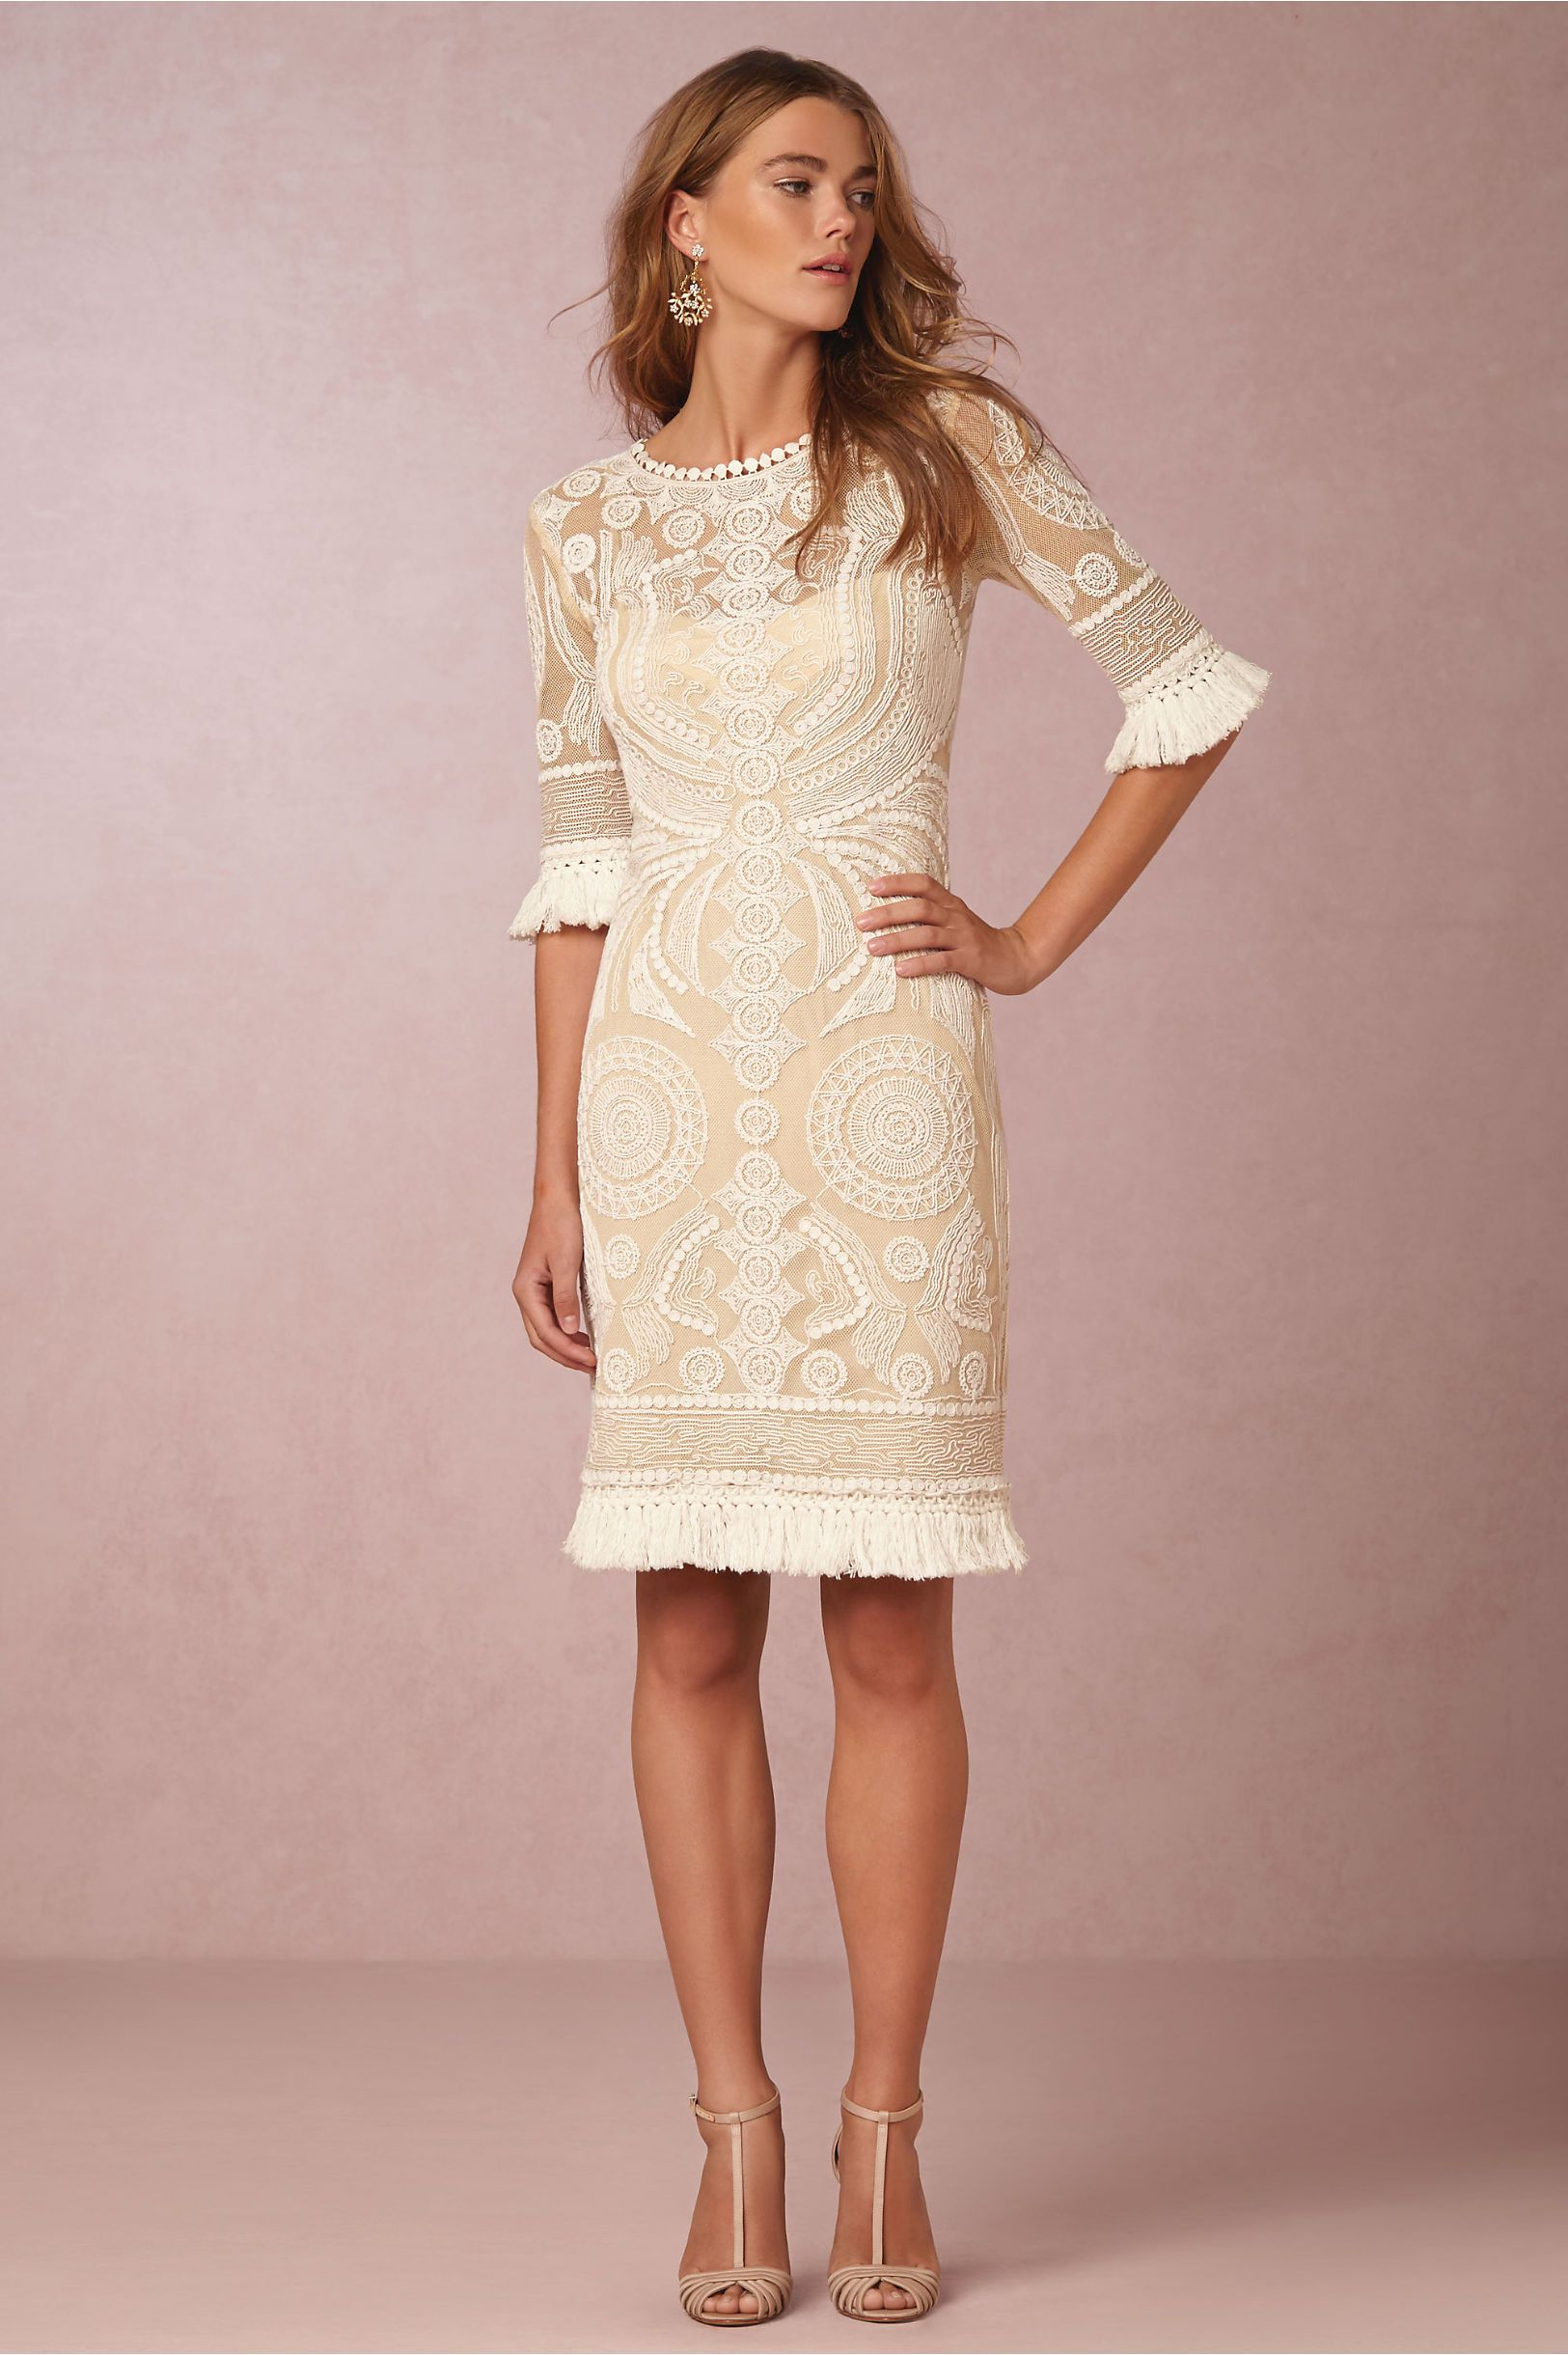 https://s7d1.scene7.com/is/image/BHLDN/36873693_011_a?$zoom-xl ...